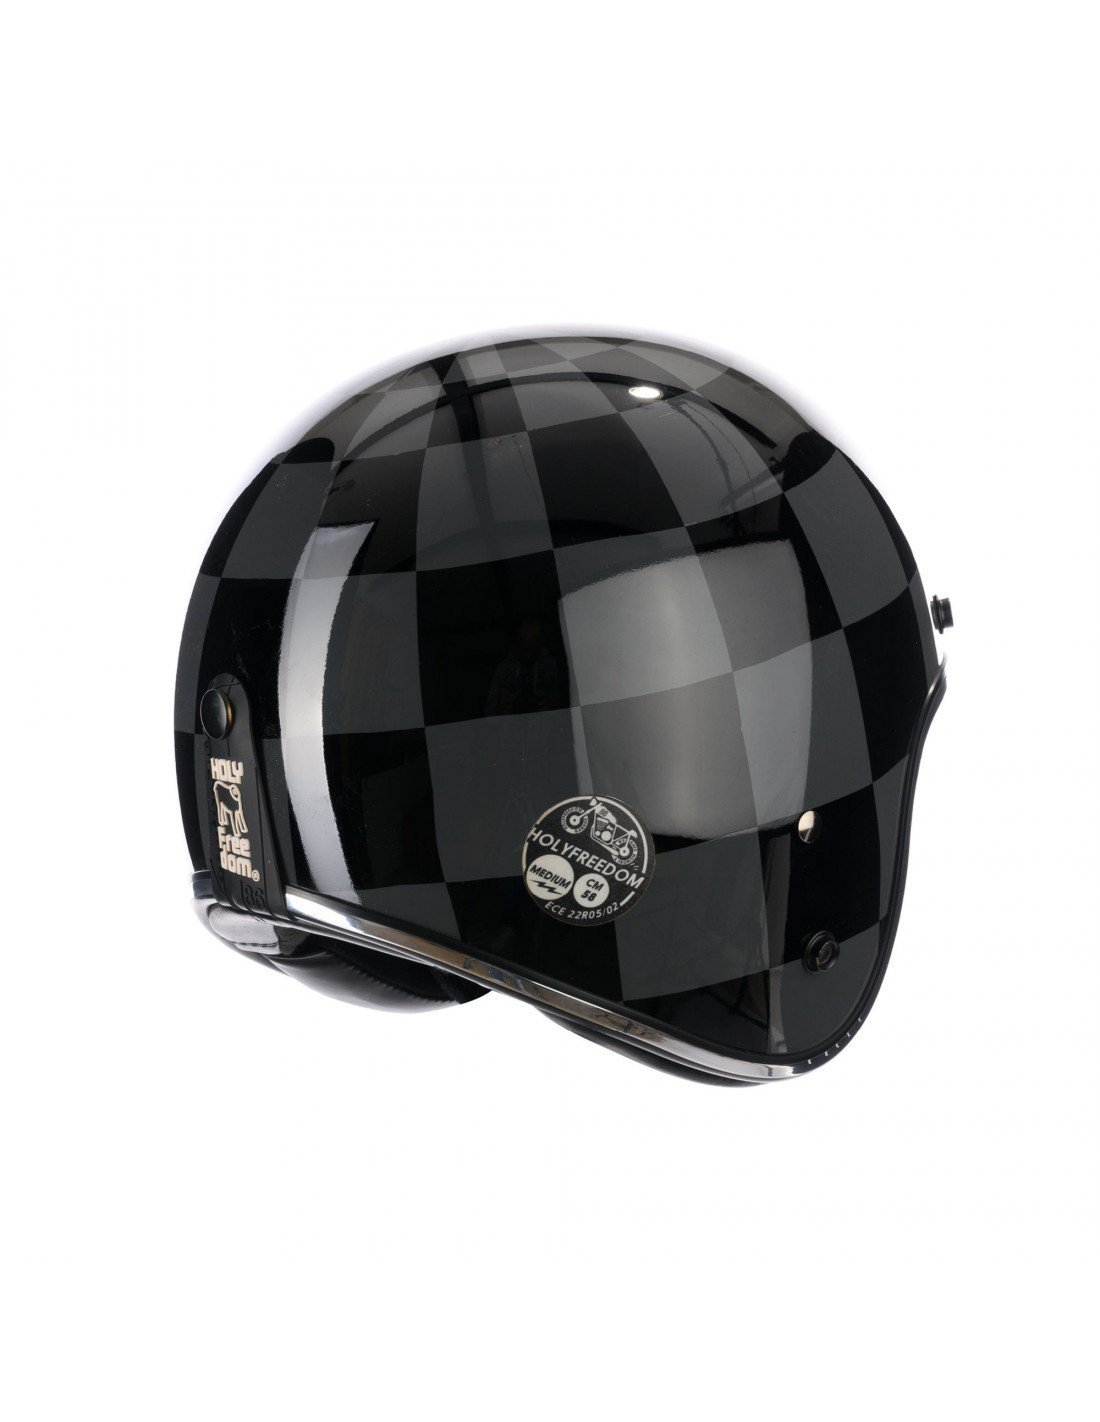 Holy Freedom - Holy Freedom Bullit Dark Open Face Jet Helmet ECE Certified - Helmets - Salt Flats Clothing